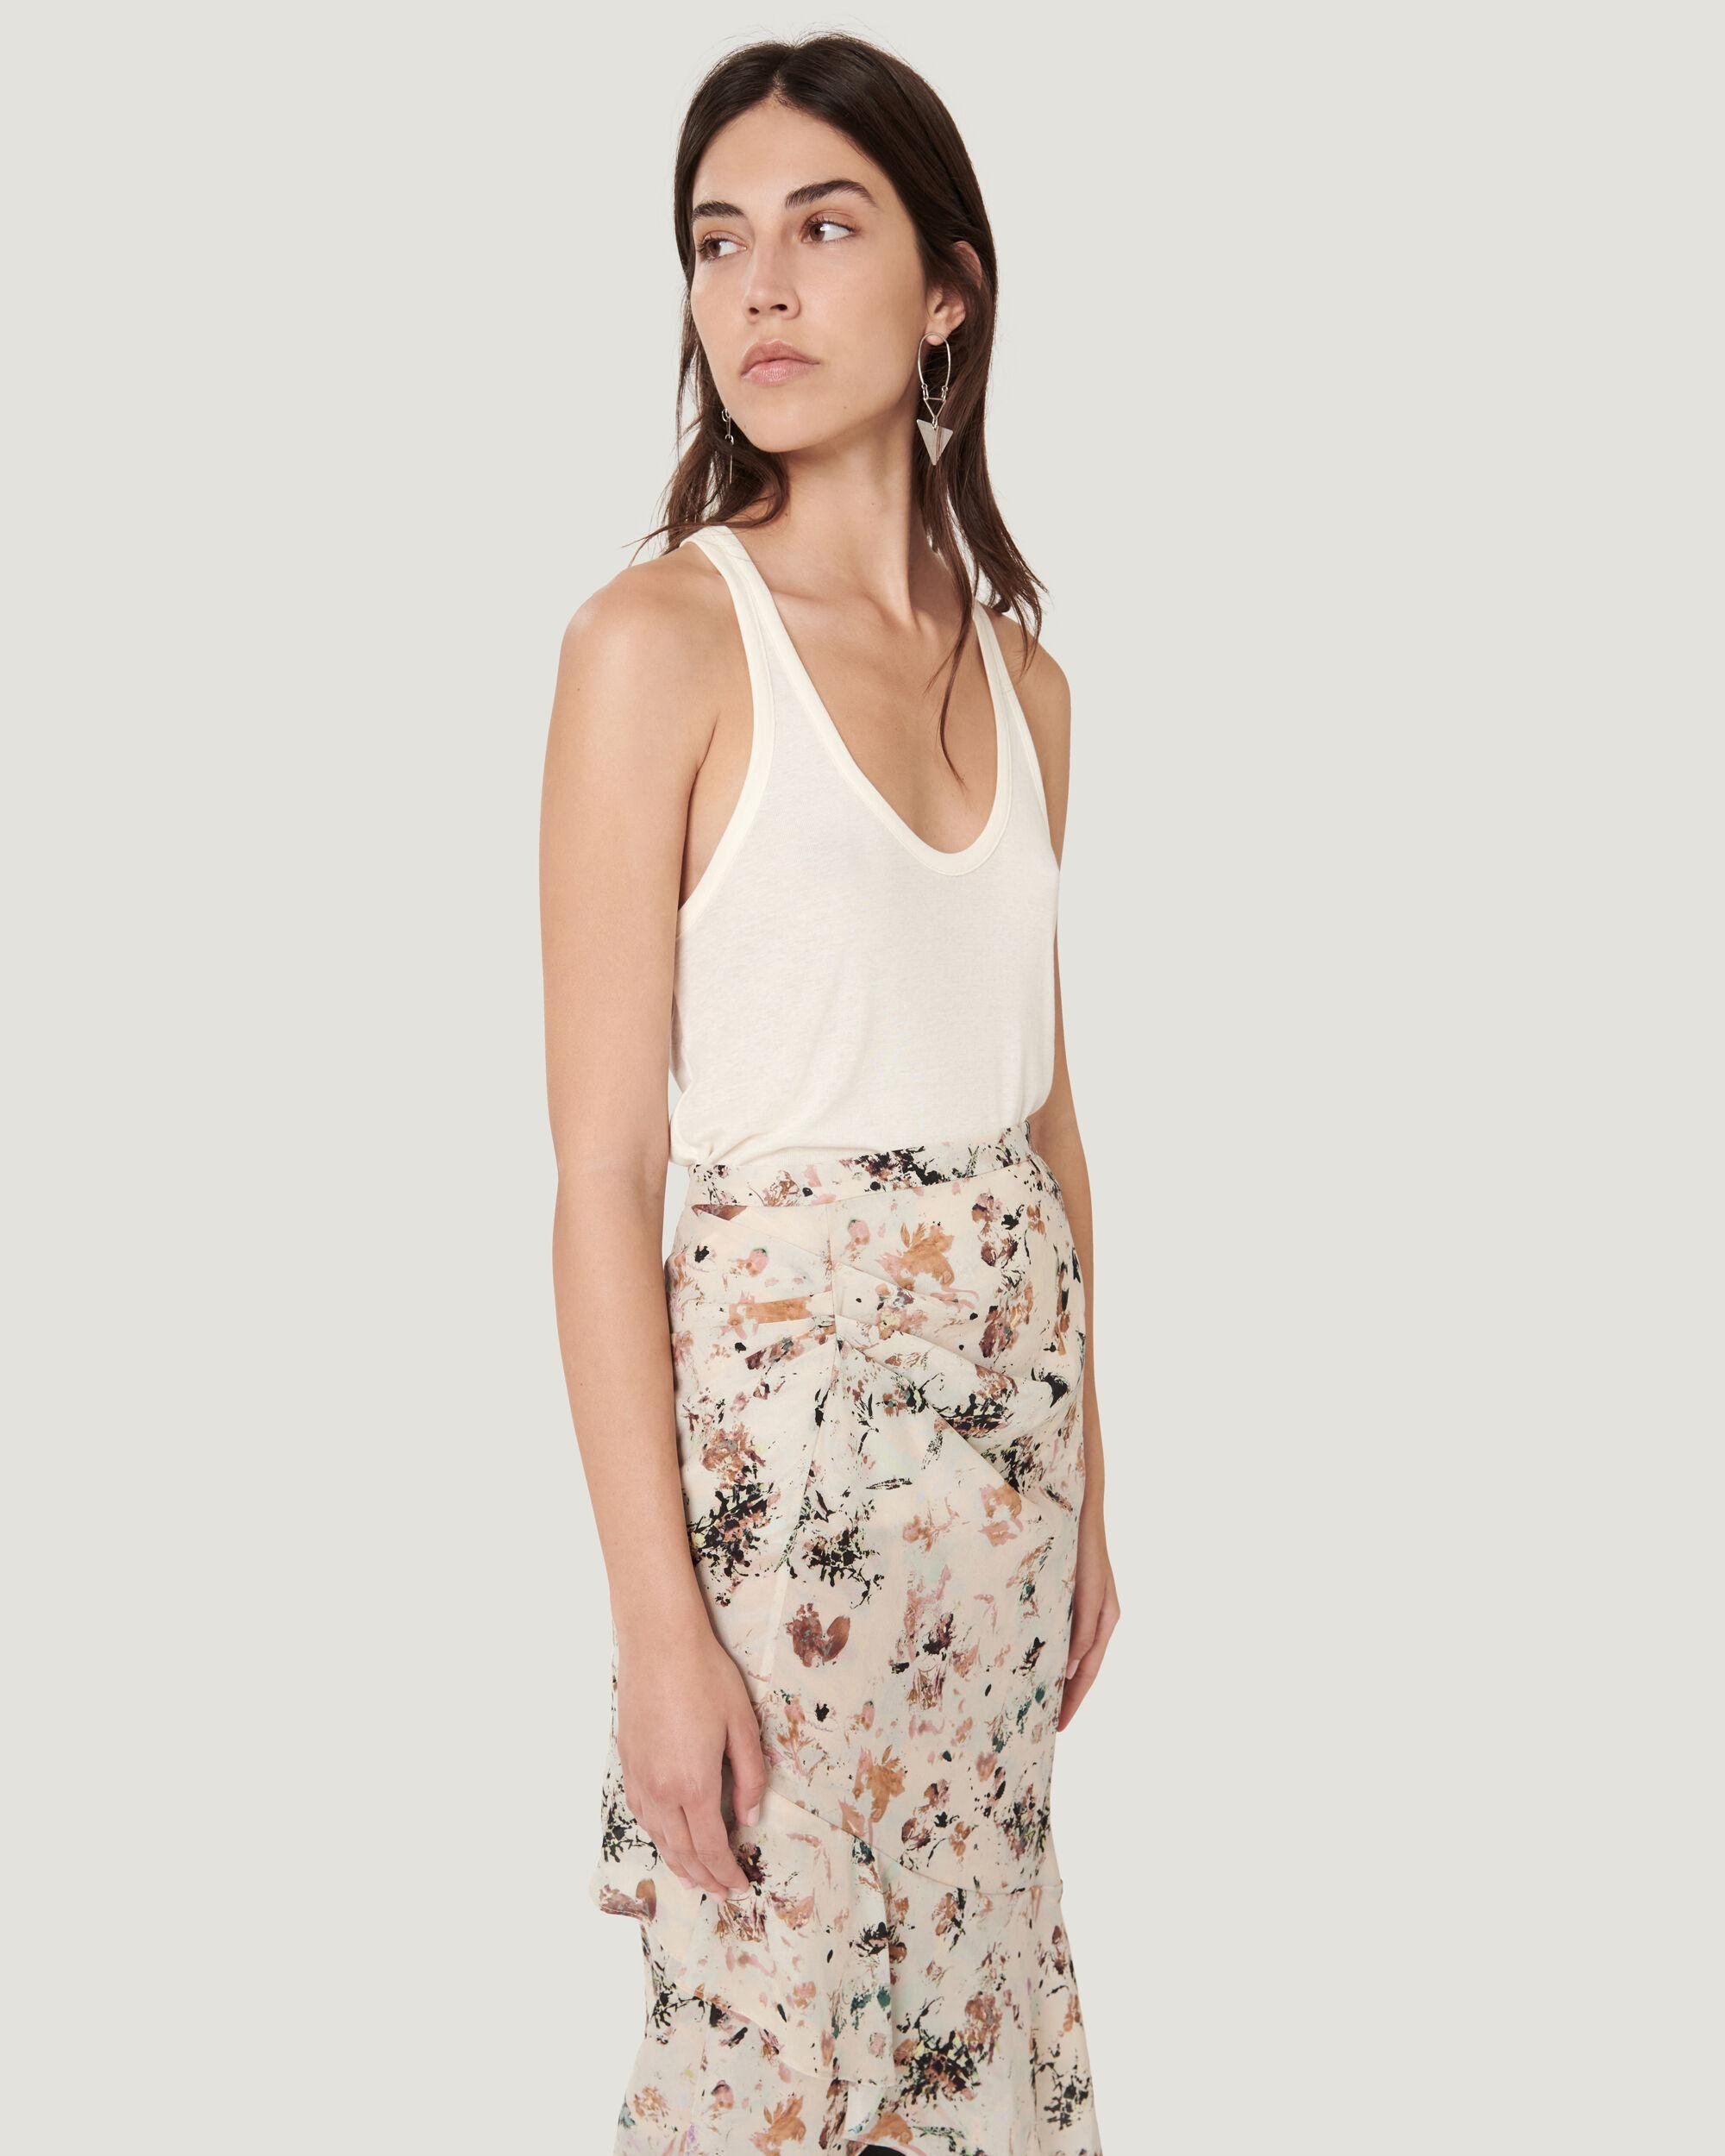 AMELY SCOOP NECK THIN STRAP TANK TOP 3